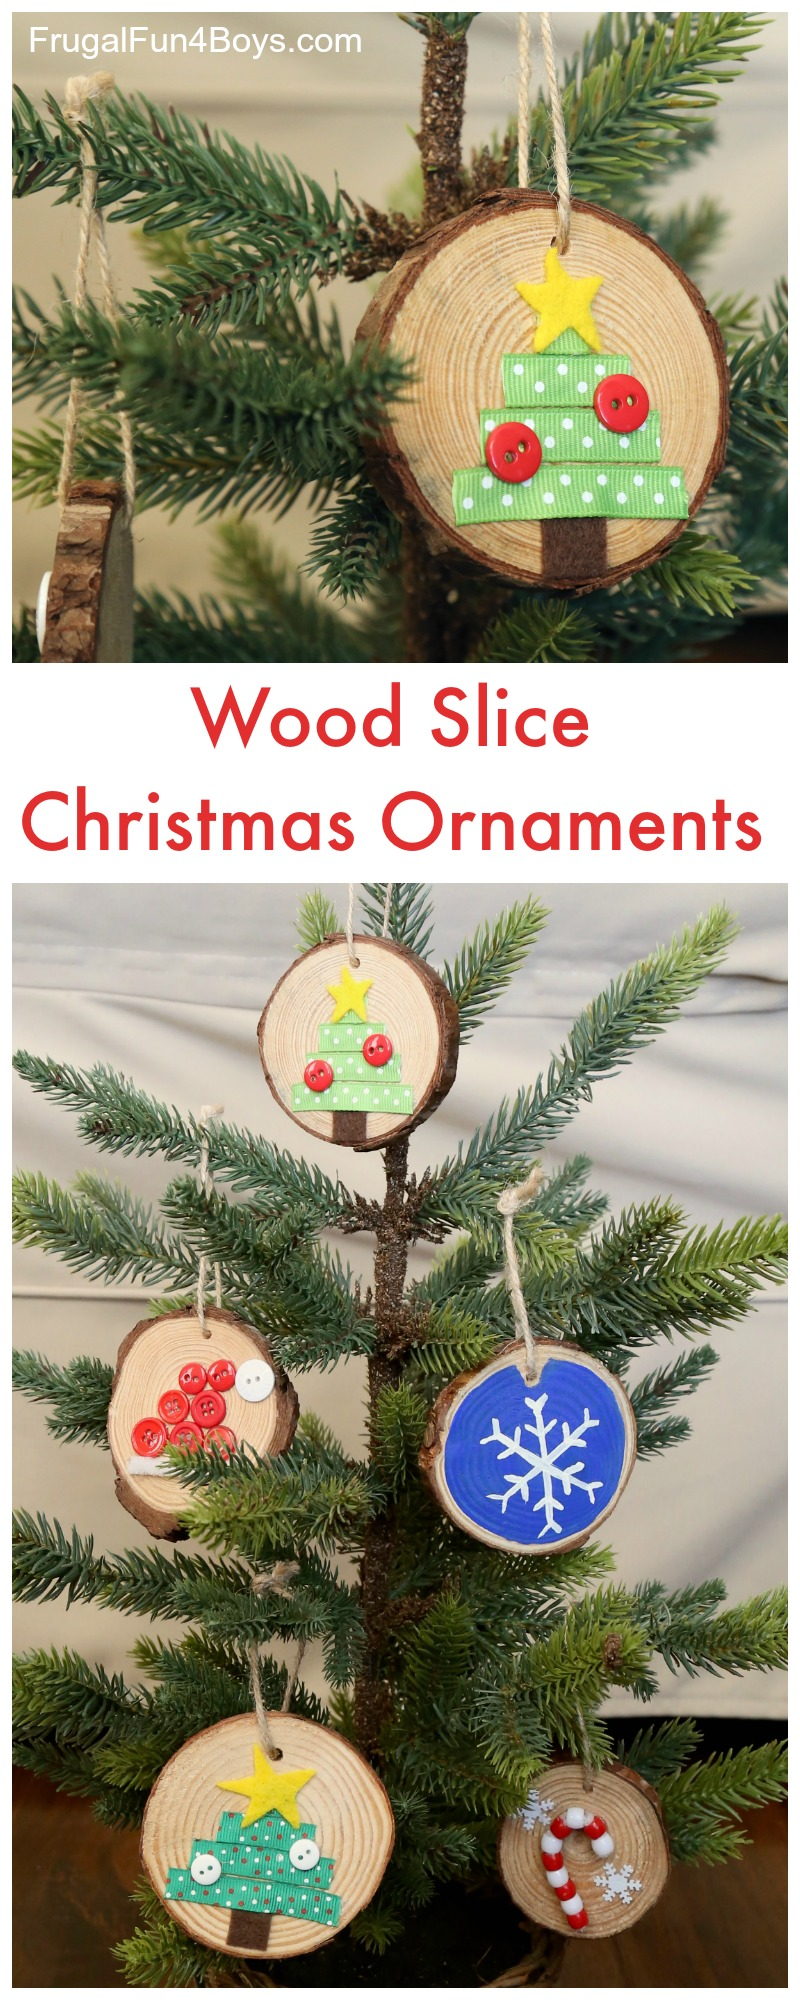 How To Make Adorable Wood Slice Christmas Ornaments Frugal